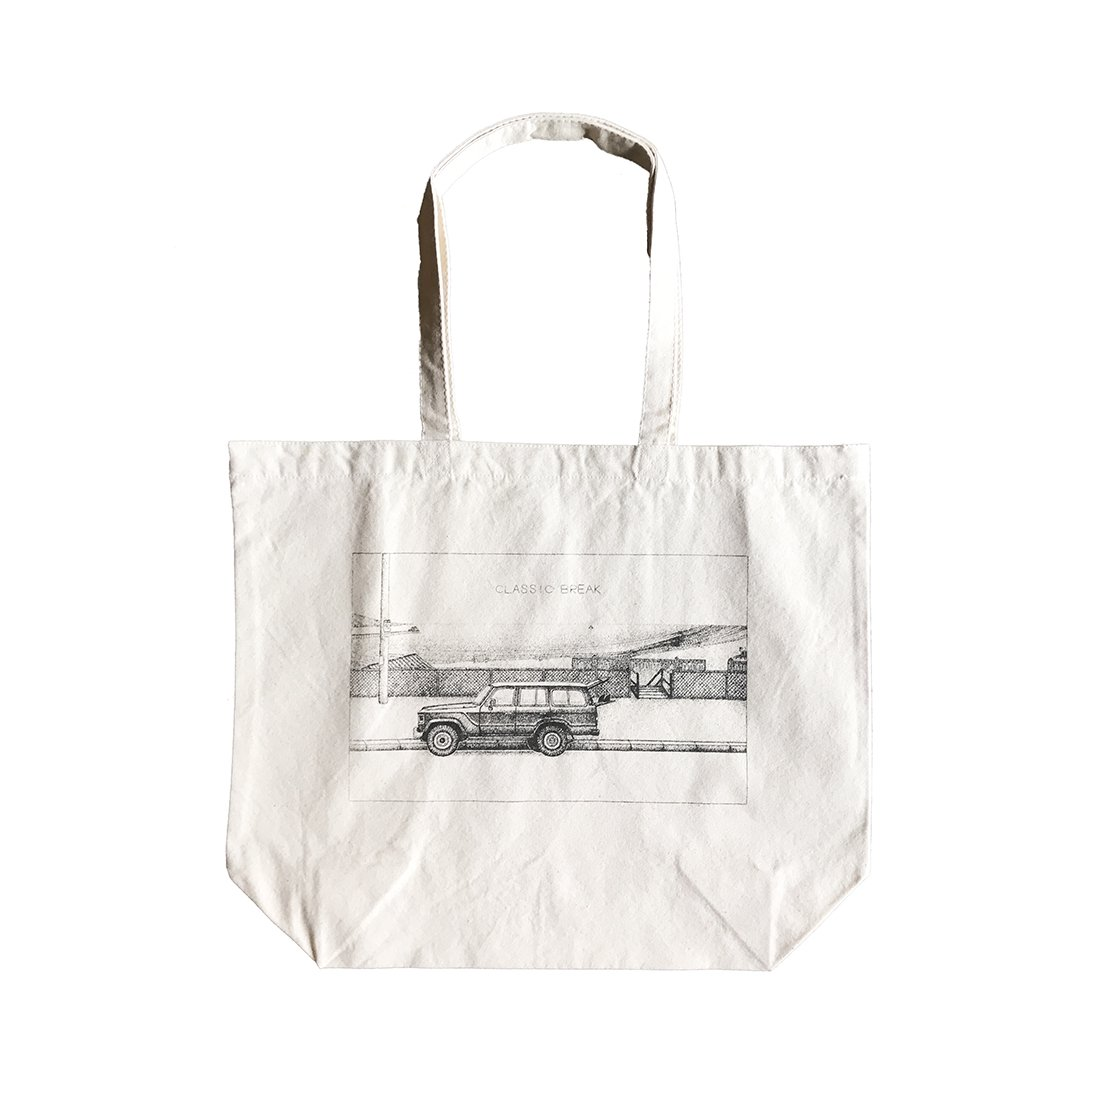 BANANA YAMAMOTO × CAPTAINS HELM #CLASSIC BREAK TOTE BAG